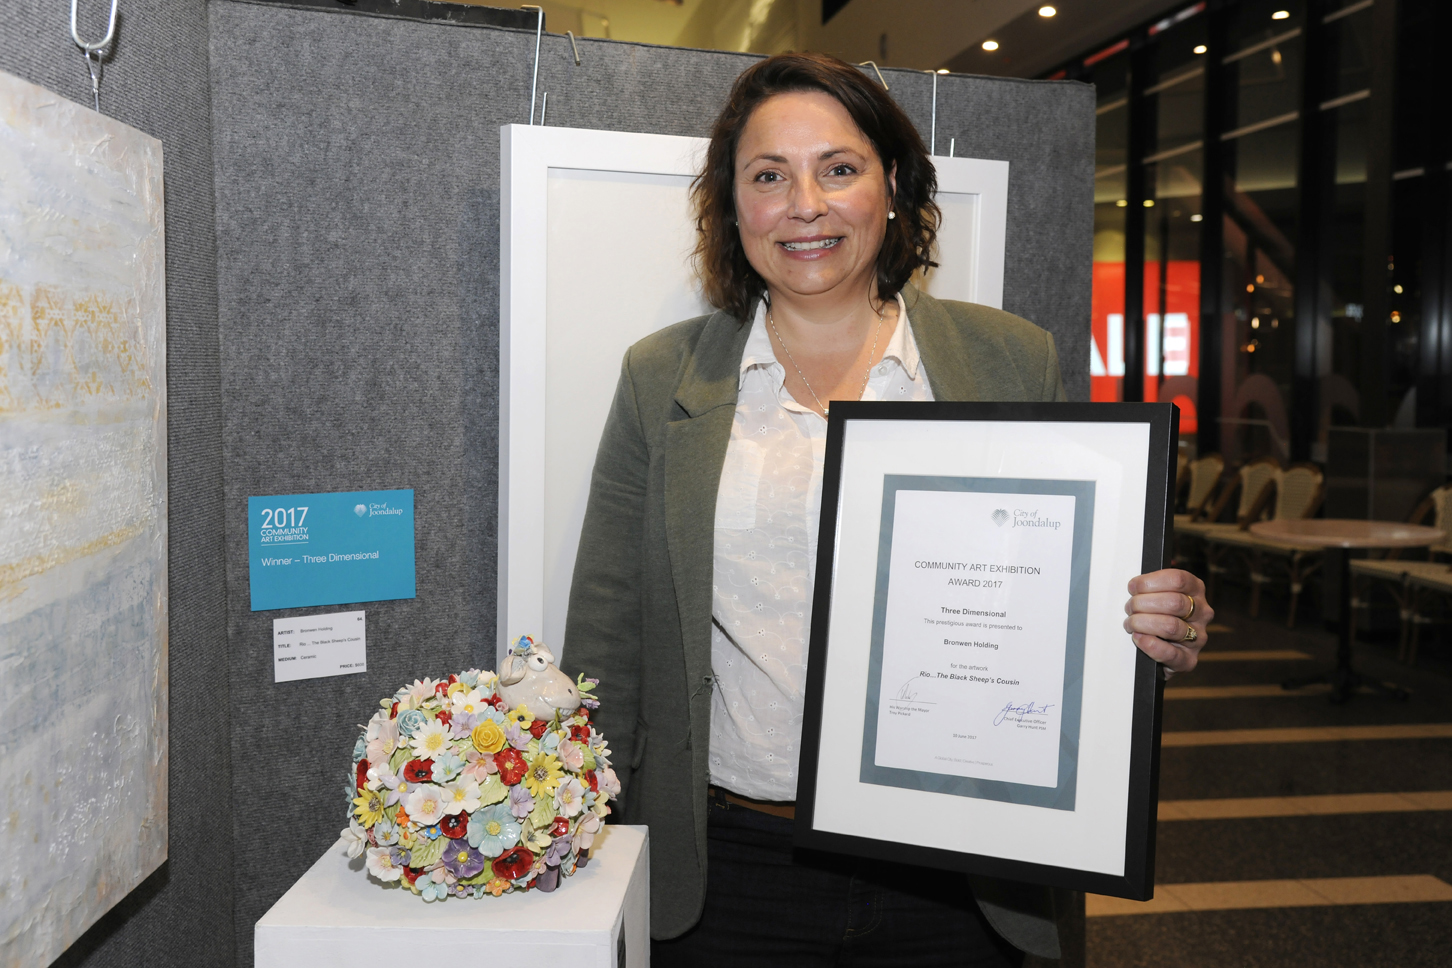 Three-Dimensional Works winner Bronwen Holding. Picture: Chris Kershaw